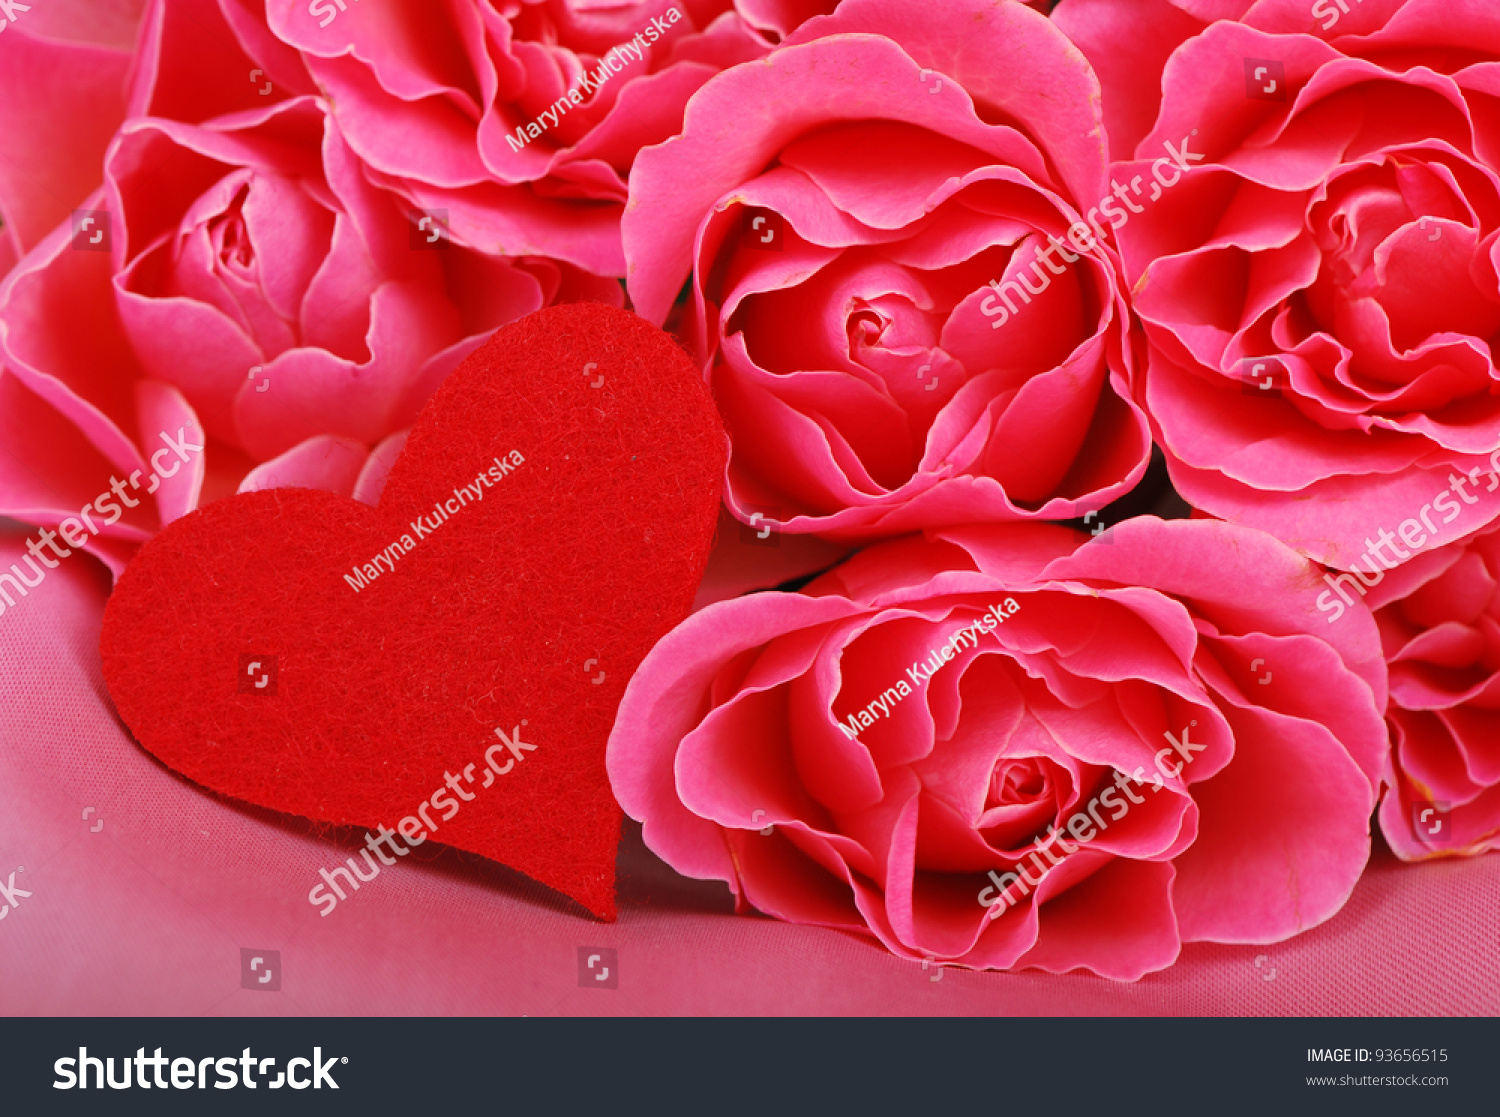 red symbol heart lovely roses valentines stock photo (edit now